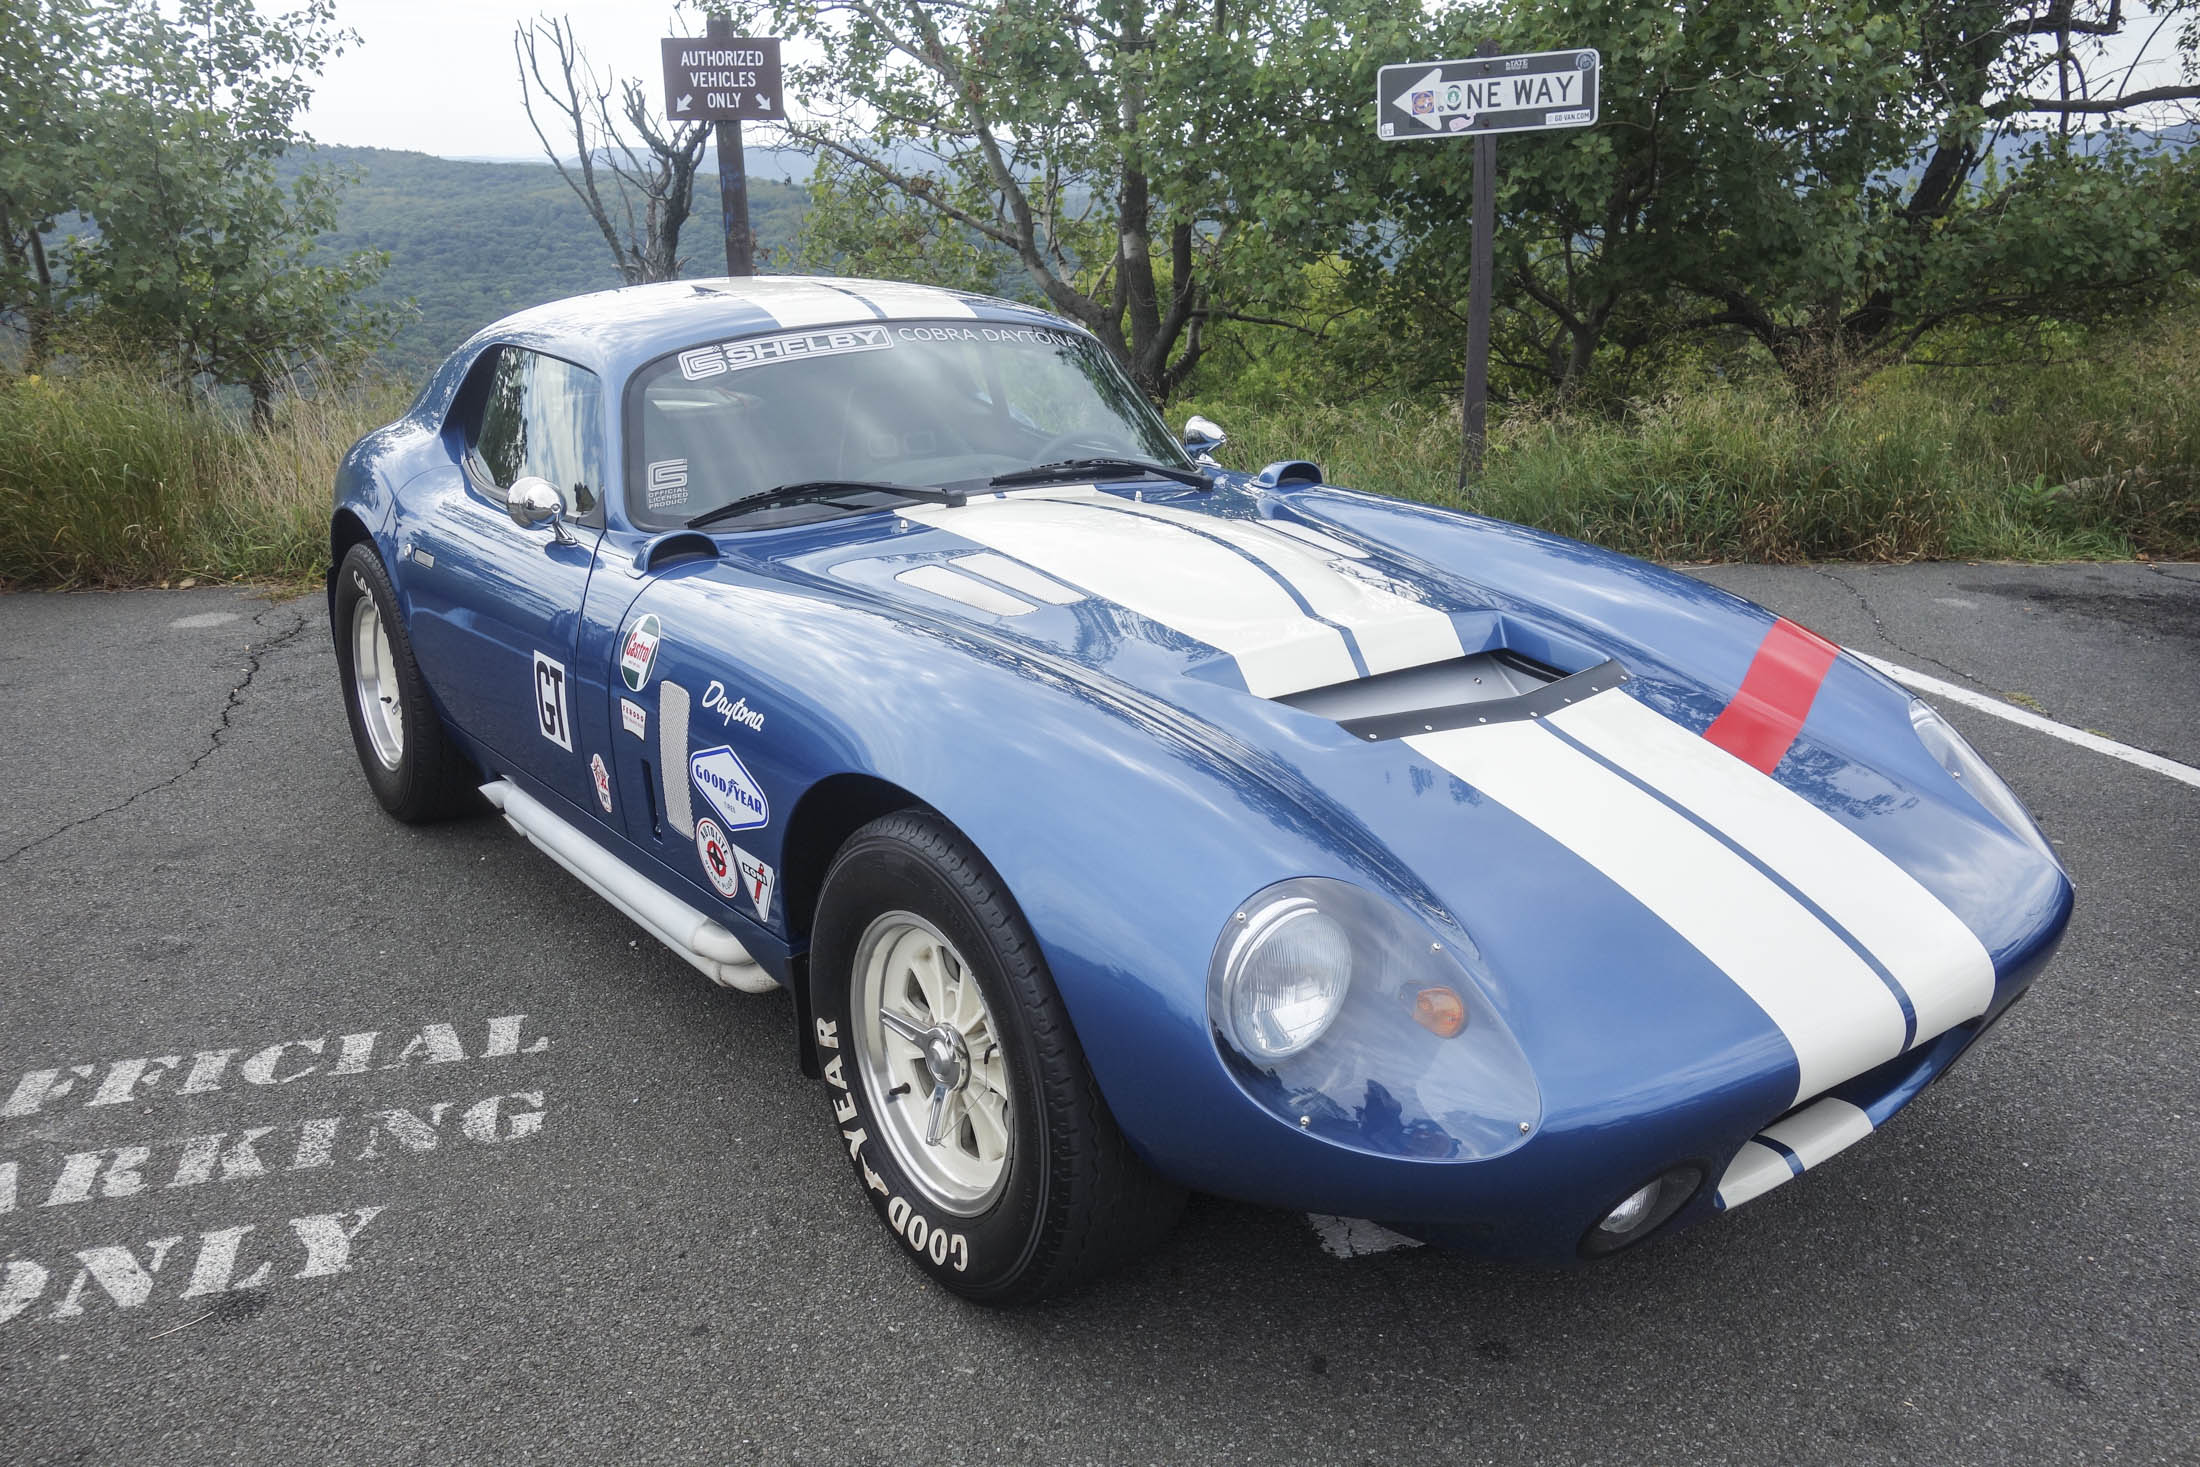 The Best Throwback: Superformance Shelby Coupe